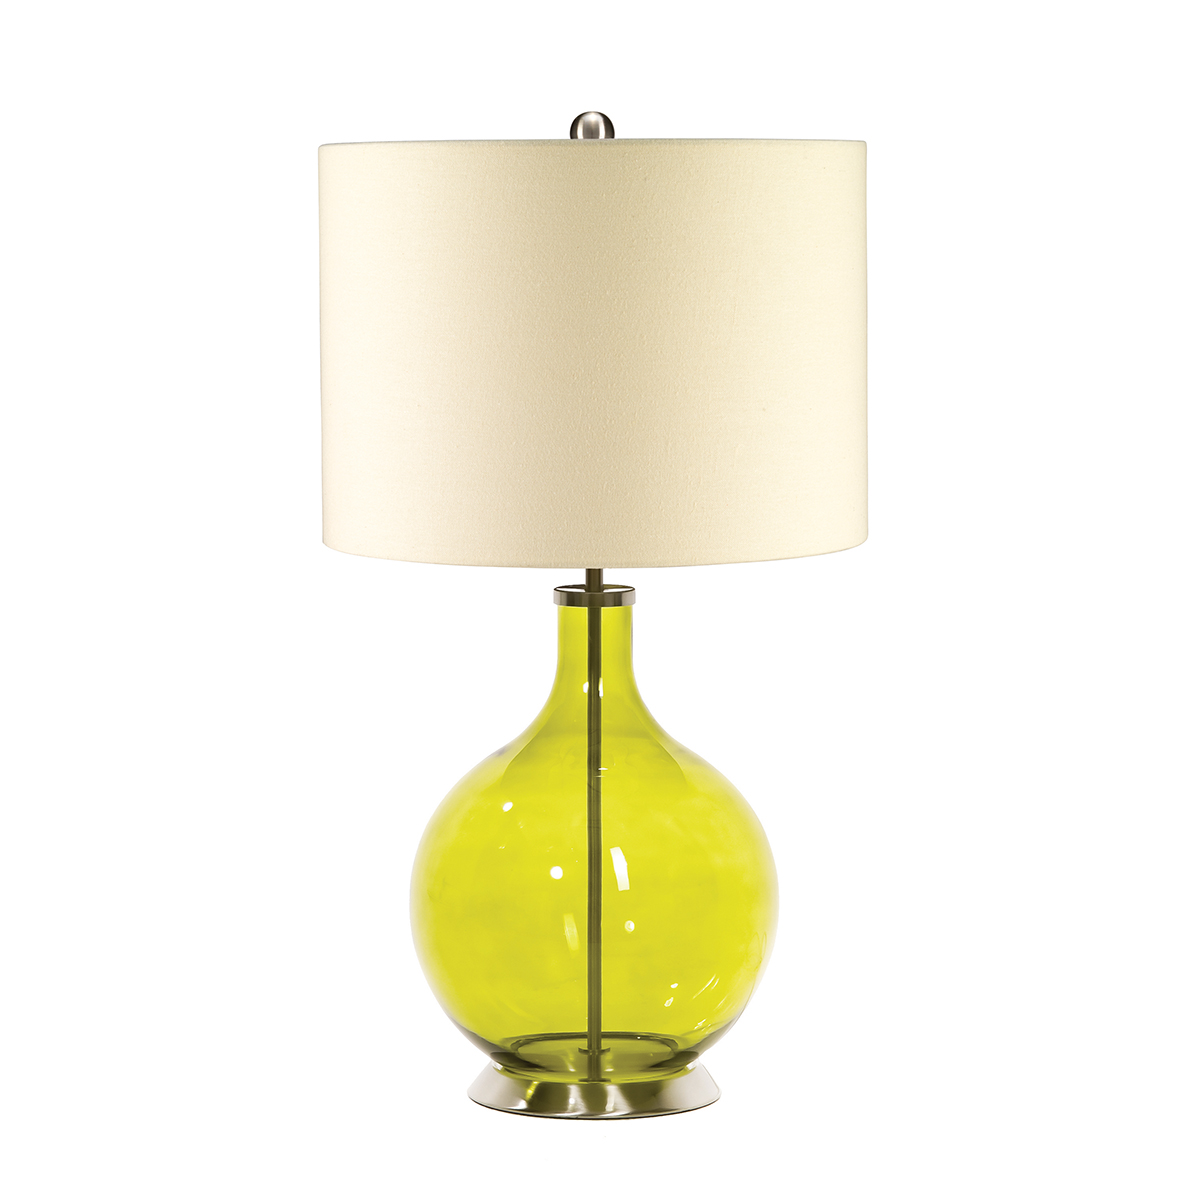 31332 - Table Lamp In Lime Green Glass And Brushed Nickel ...